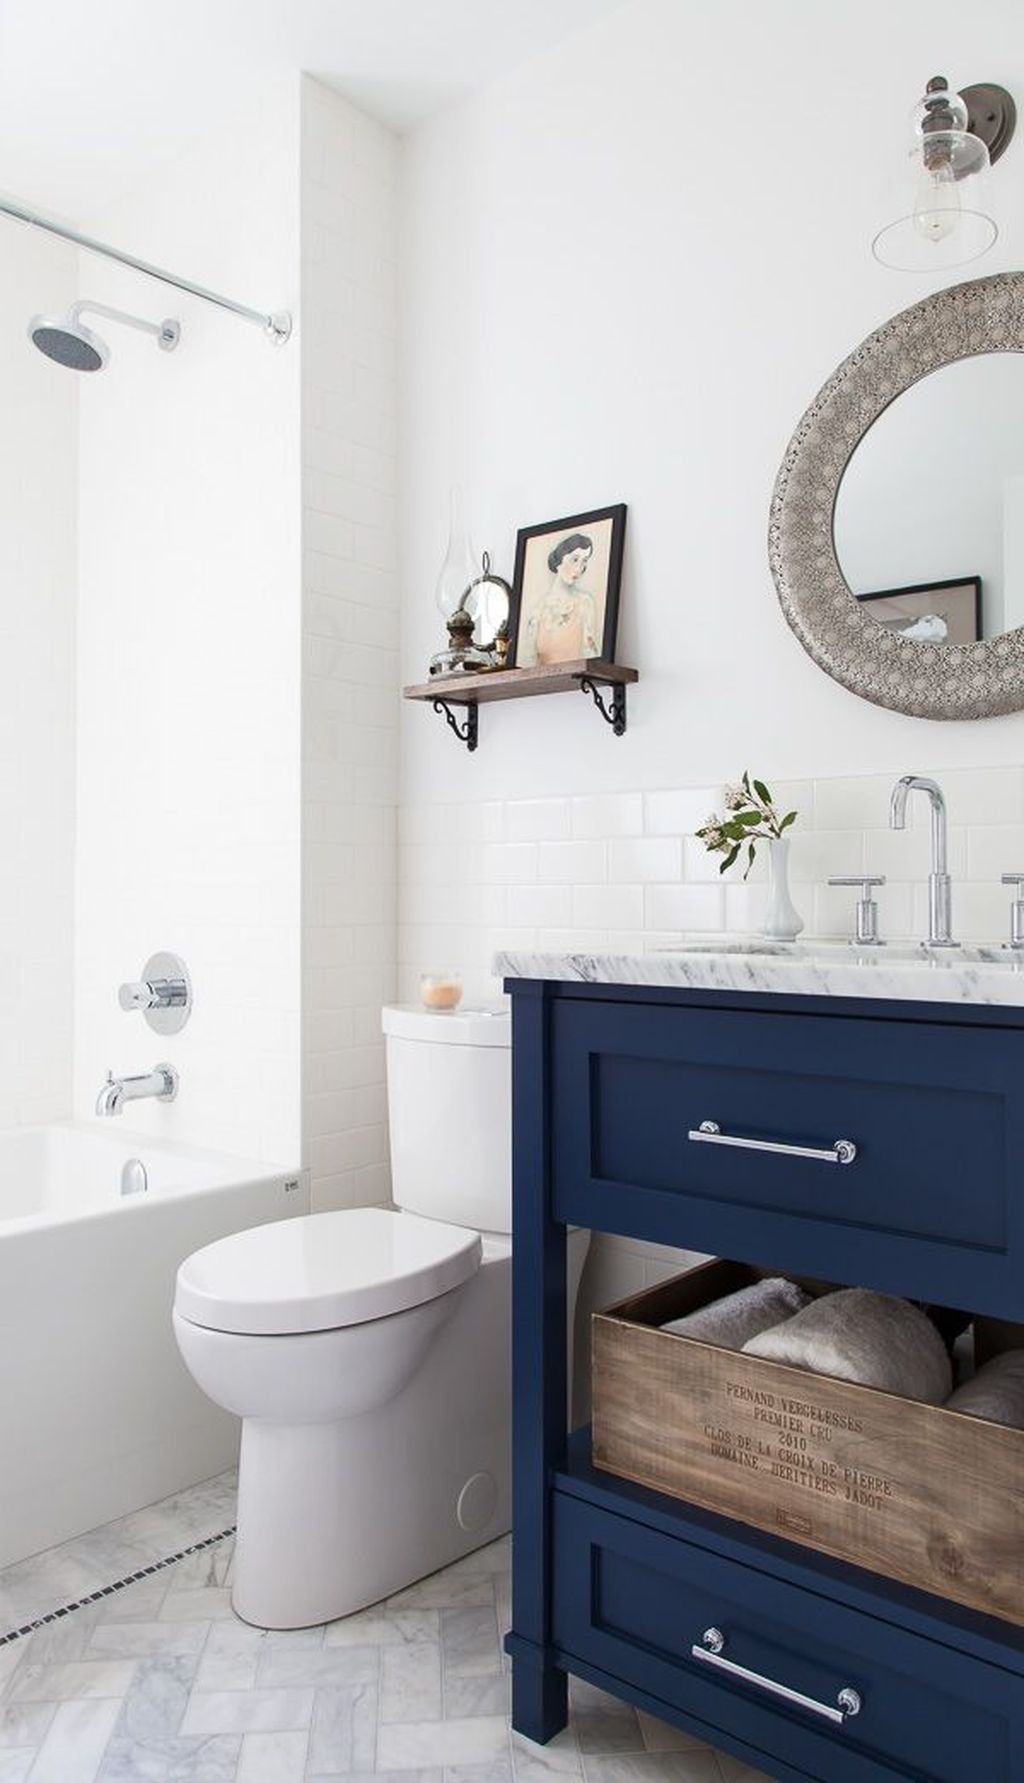 Minimalist Small Bathroom Remodeling On A Budget 09